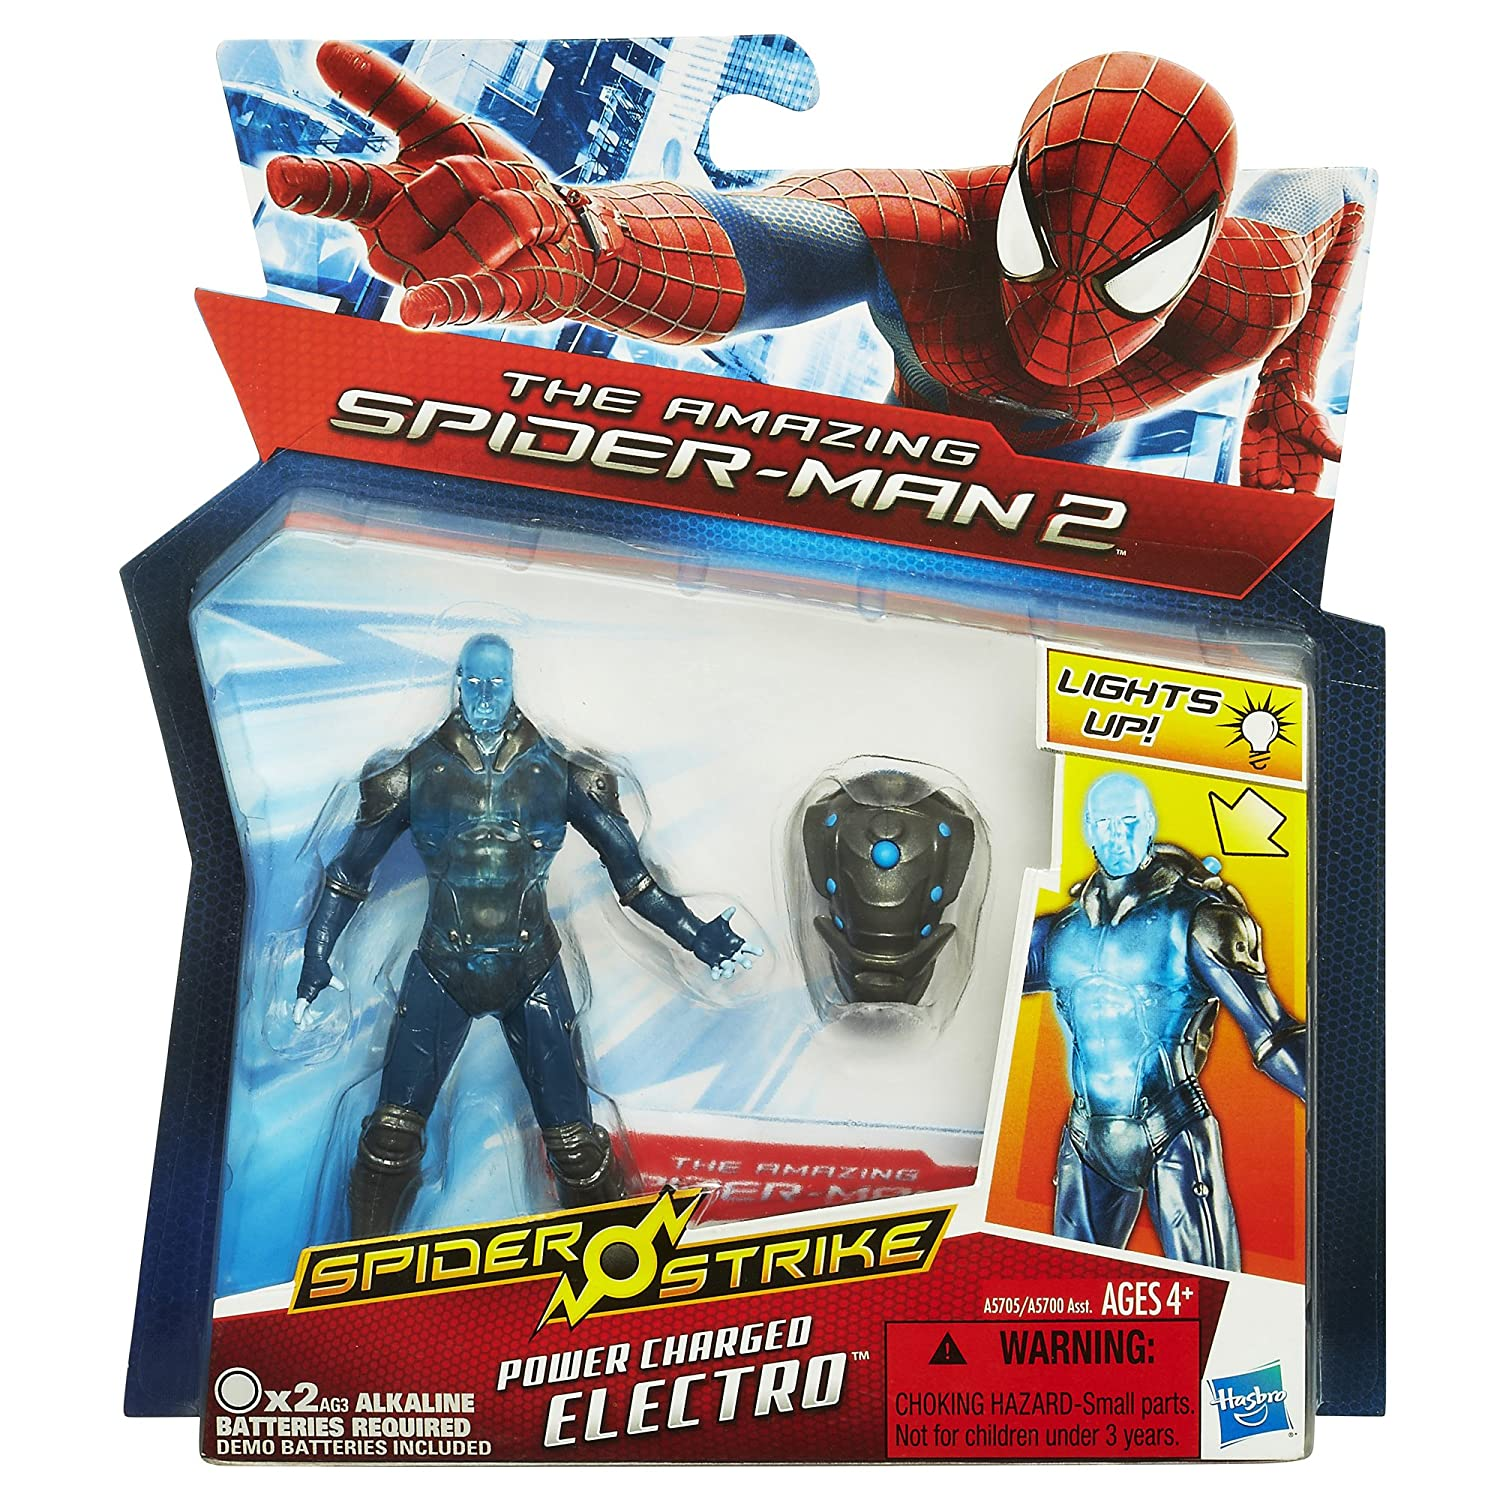 Marvel Amazing Spider-Man 2 Spider Strike Power Charged Electro Figure Hasbro A5705000